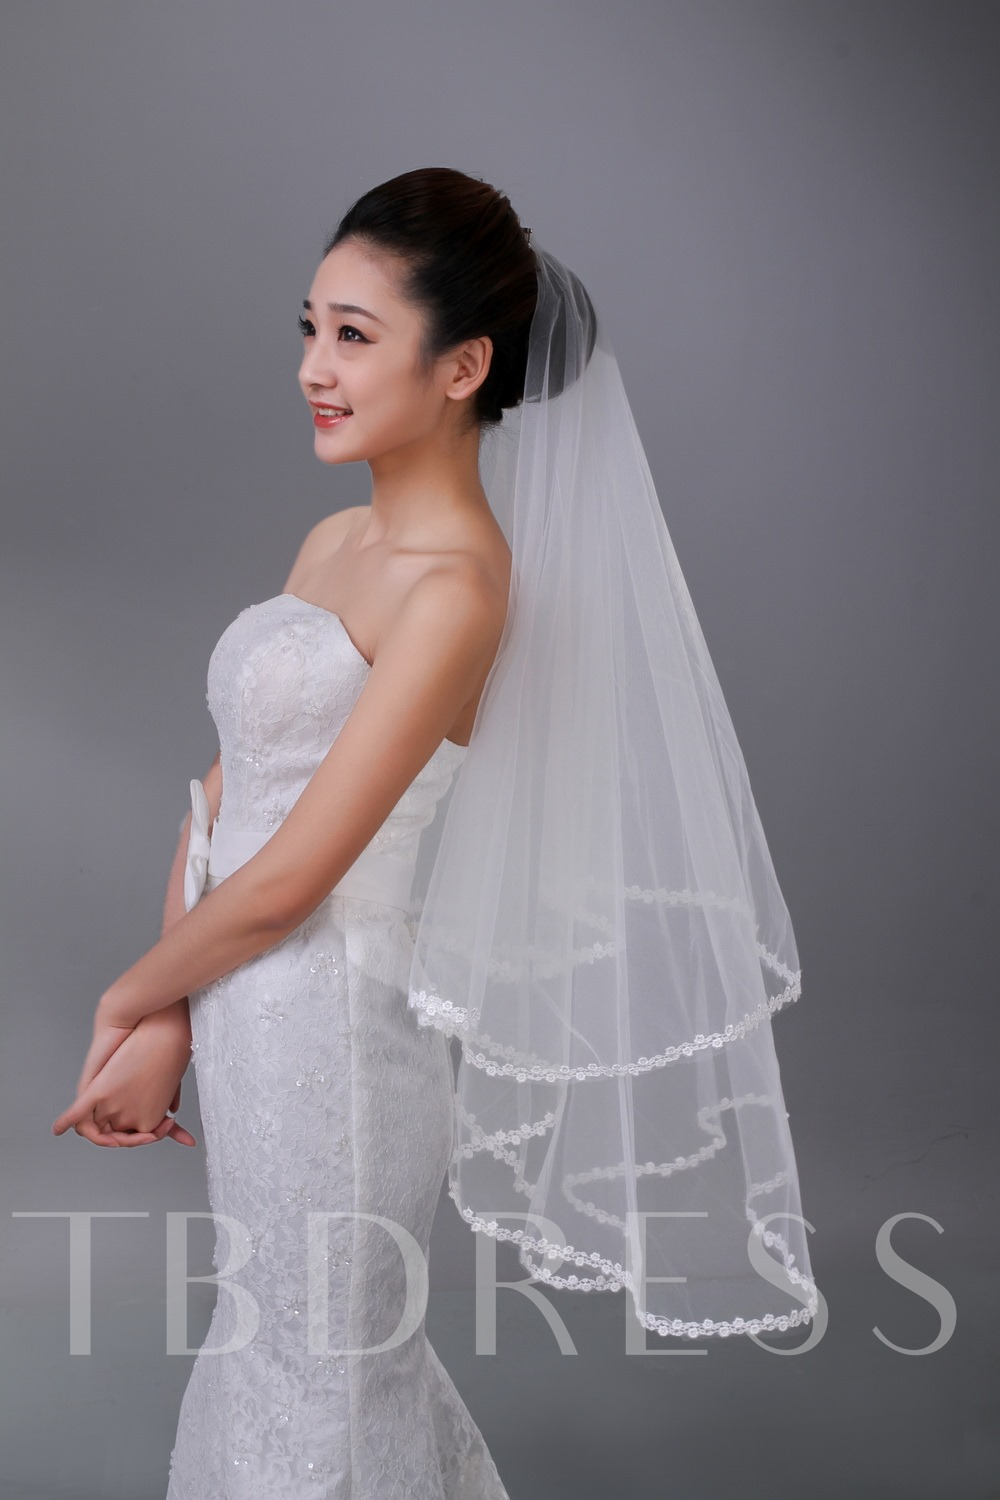 Fingertip Tulle Lace Edge Wedding Veil